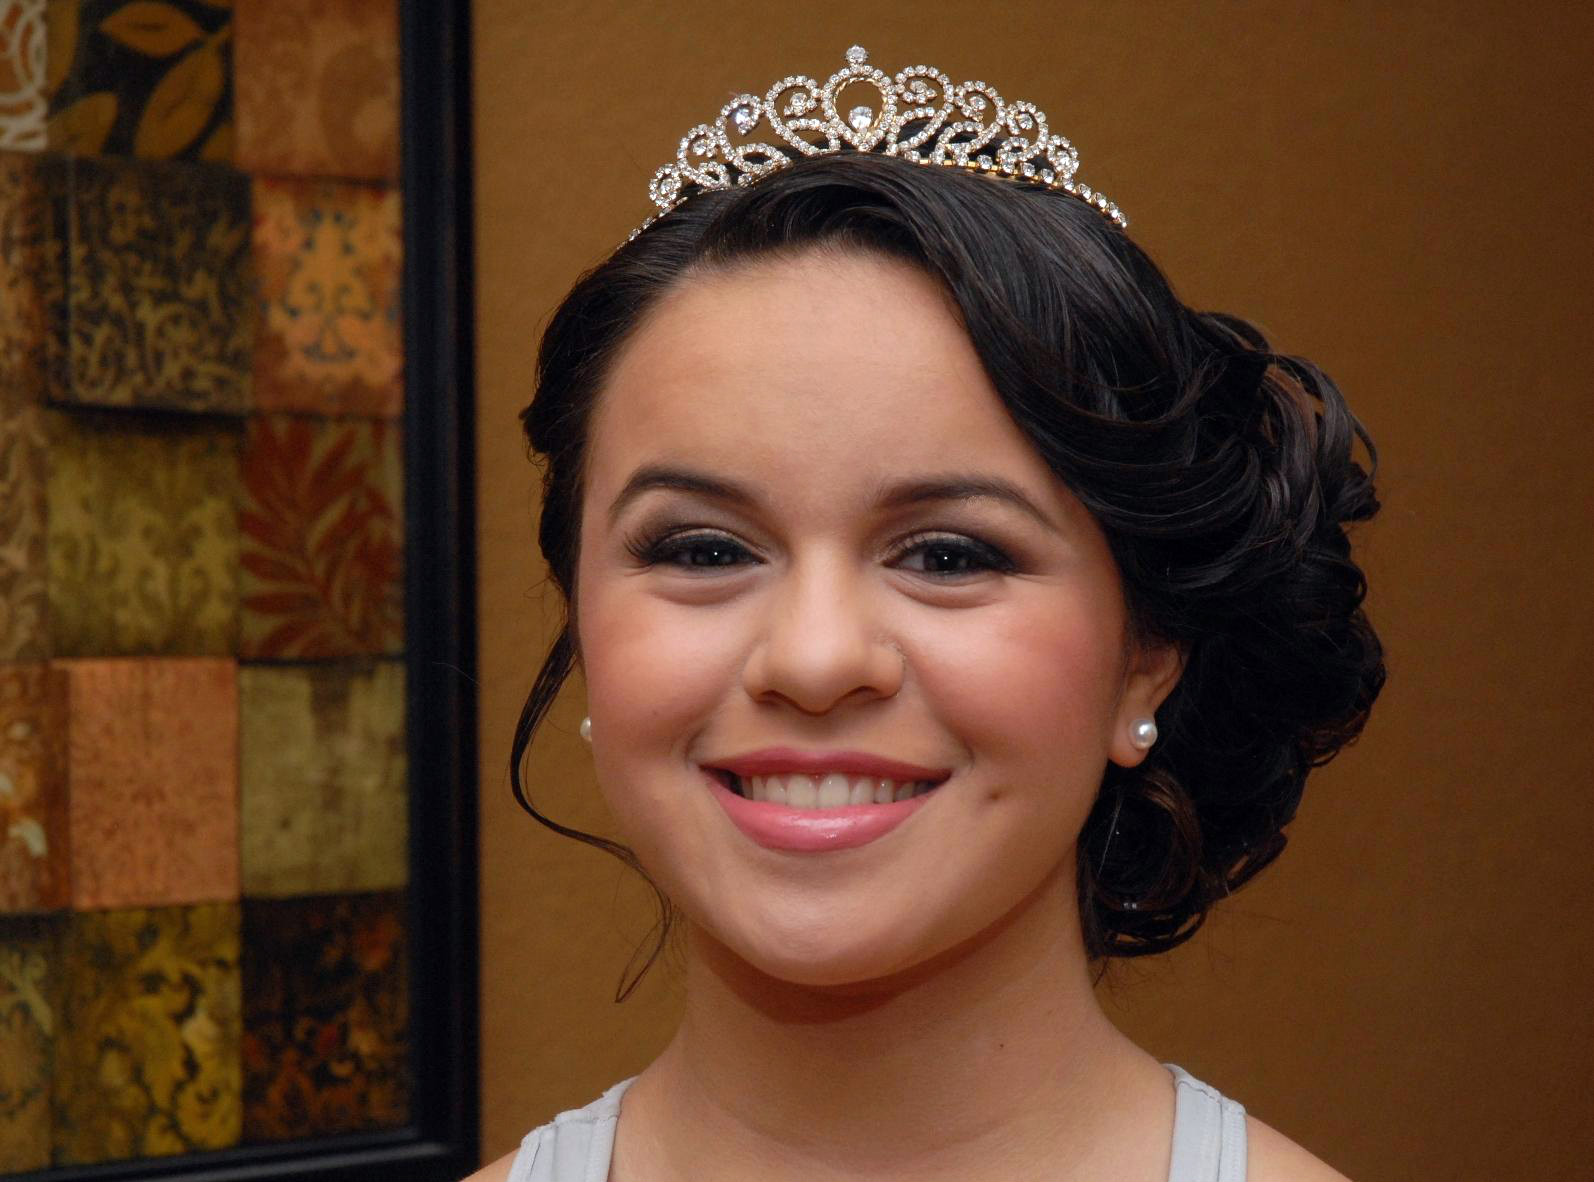 Quince Hairstyles For Short Hair: Makeup By Yaneth Gray